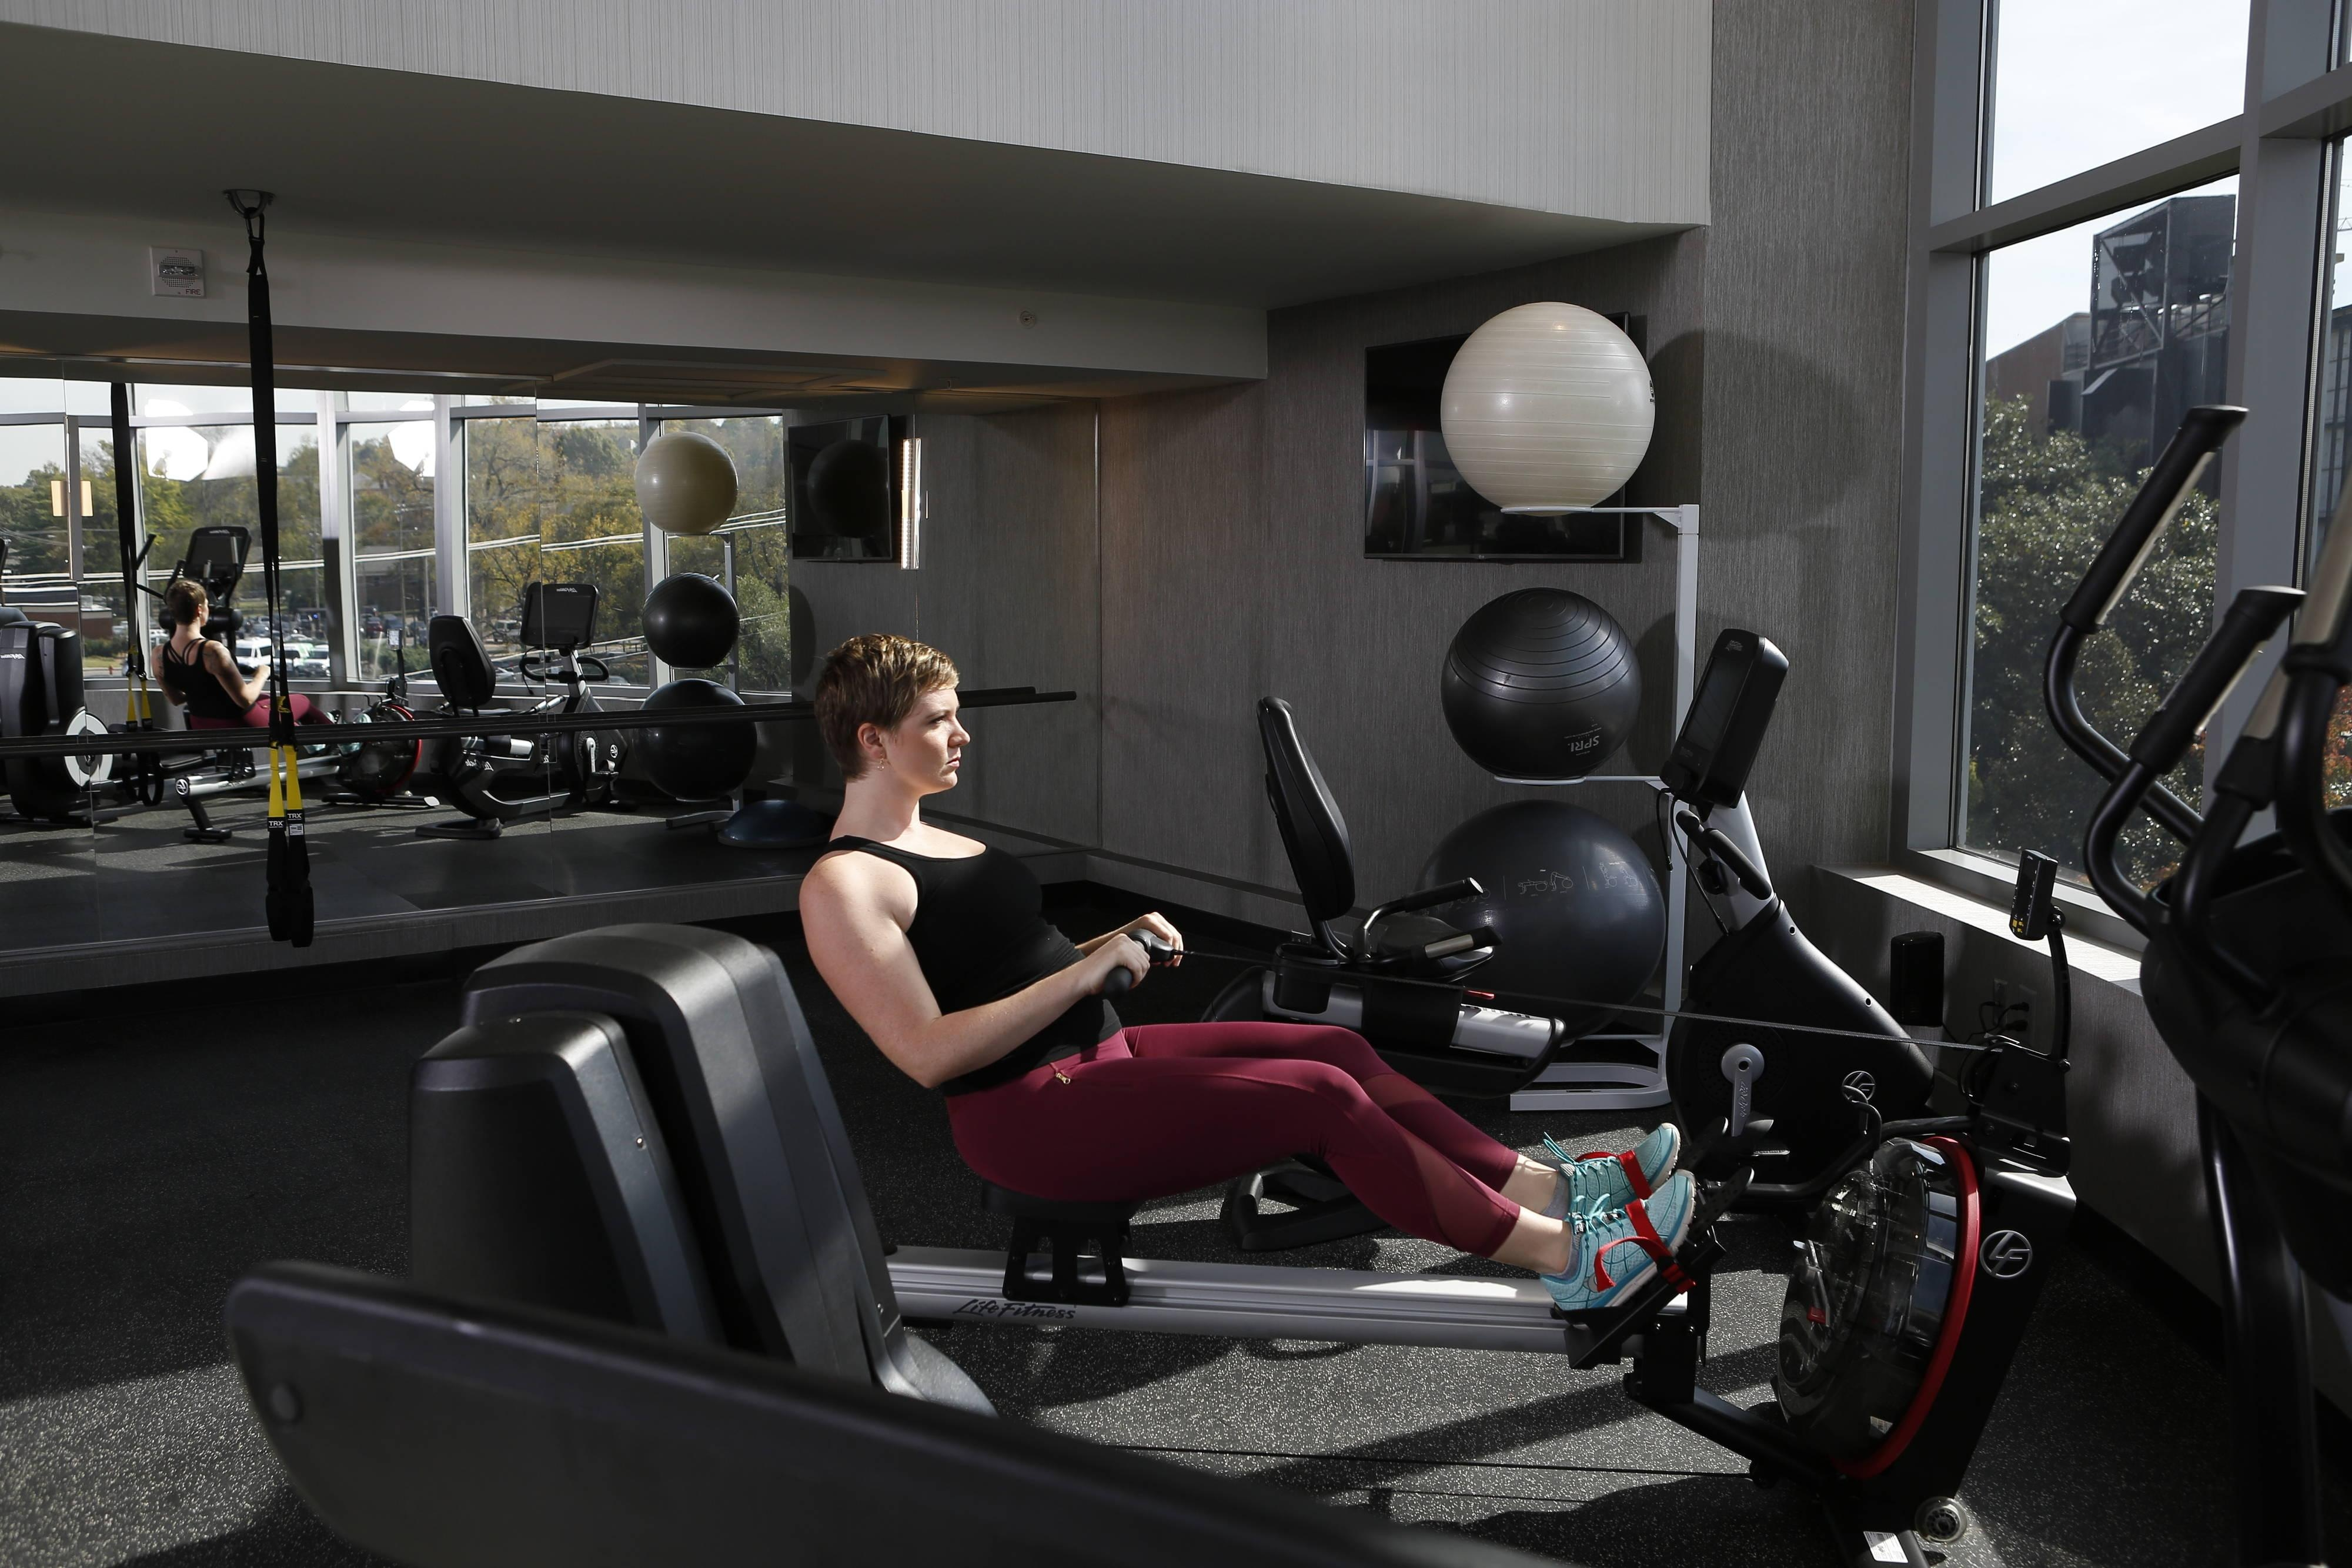 a woman on a row trainer with yoga/stretching area in the background